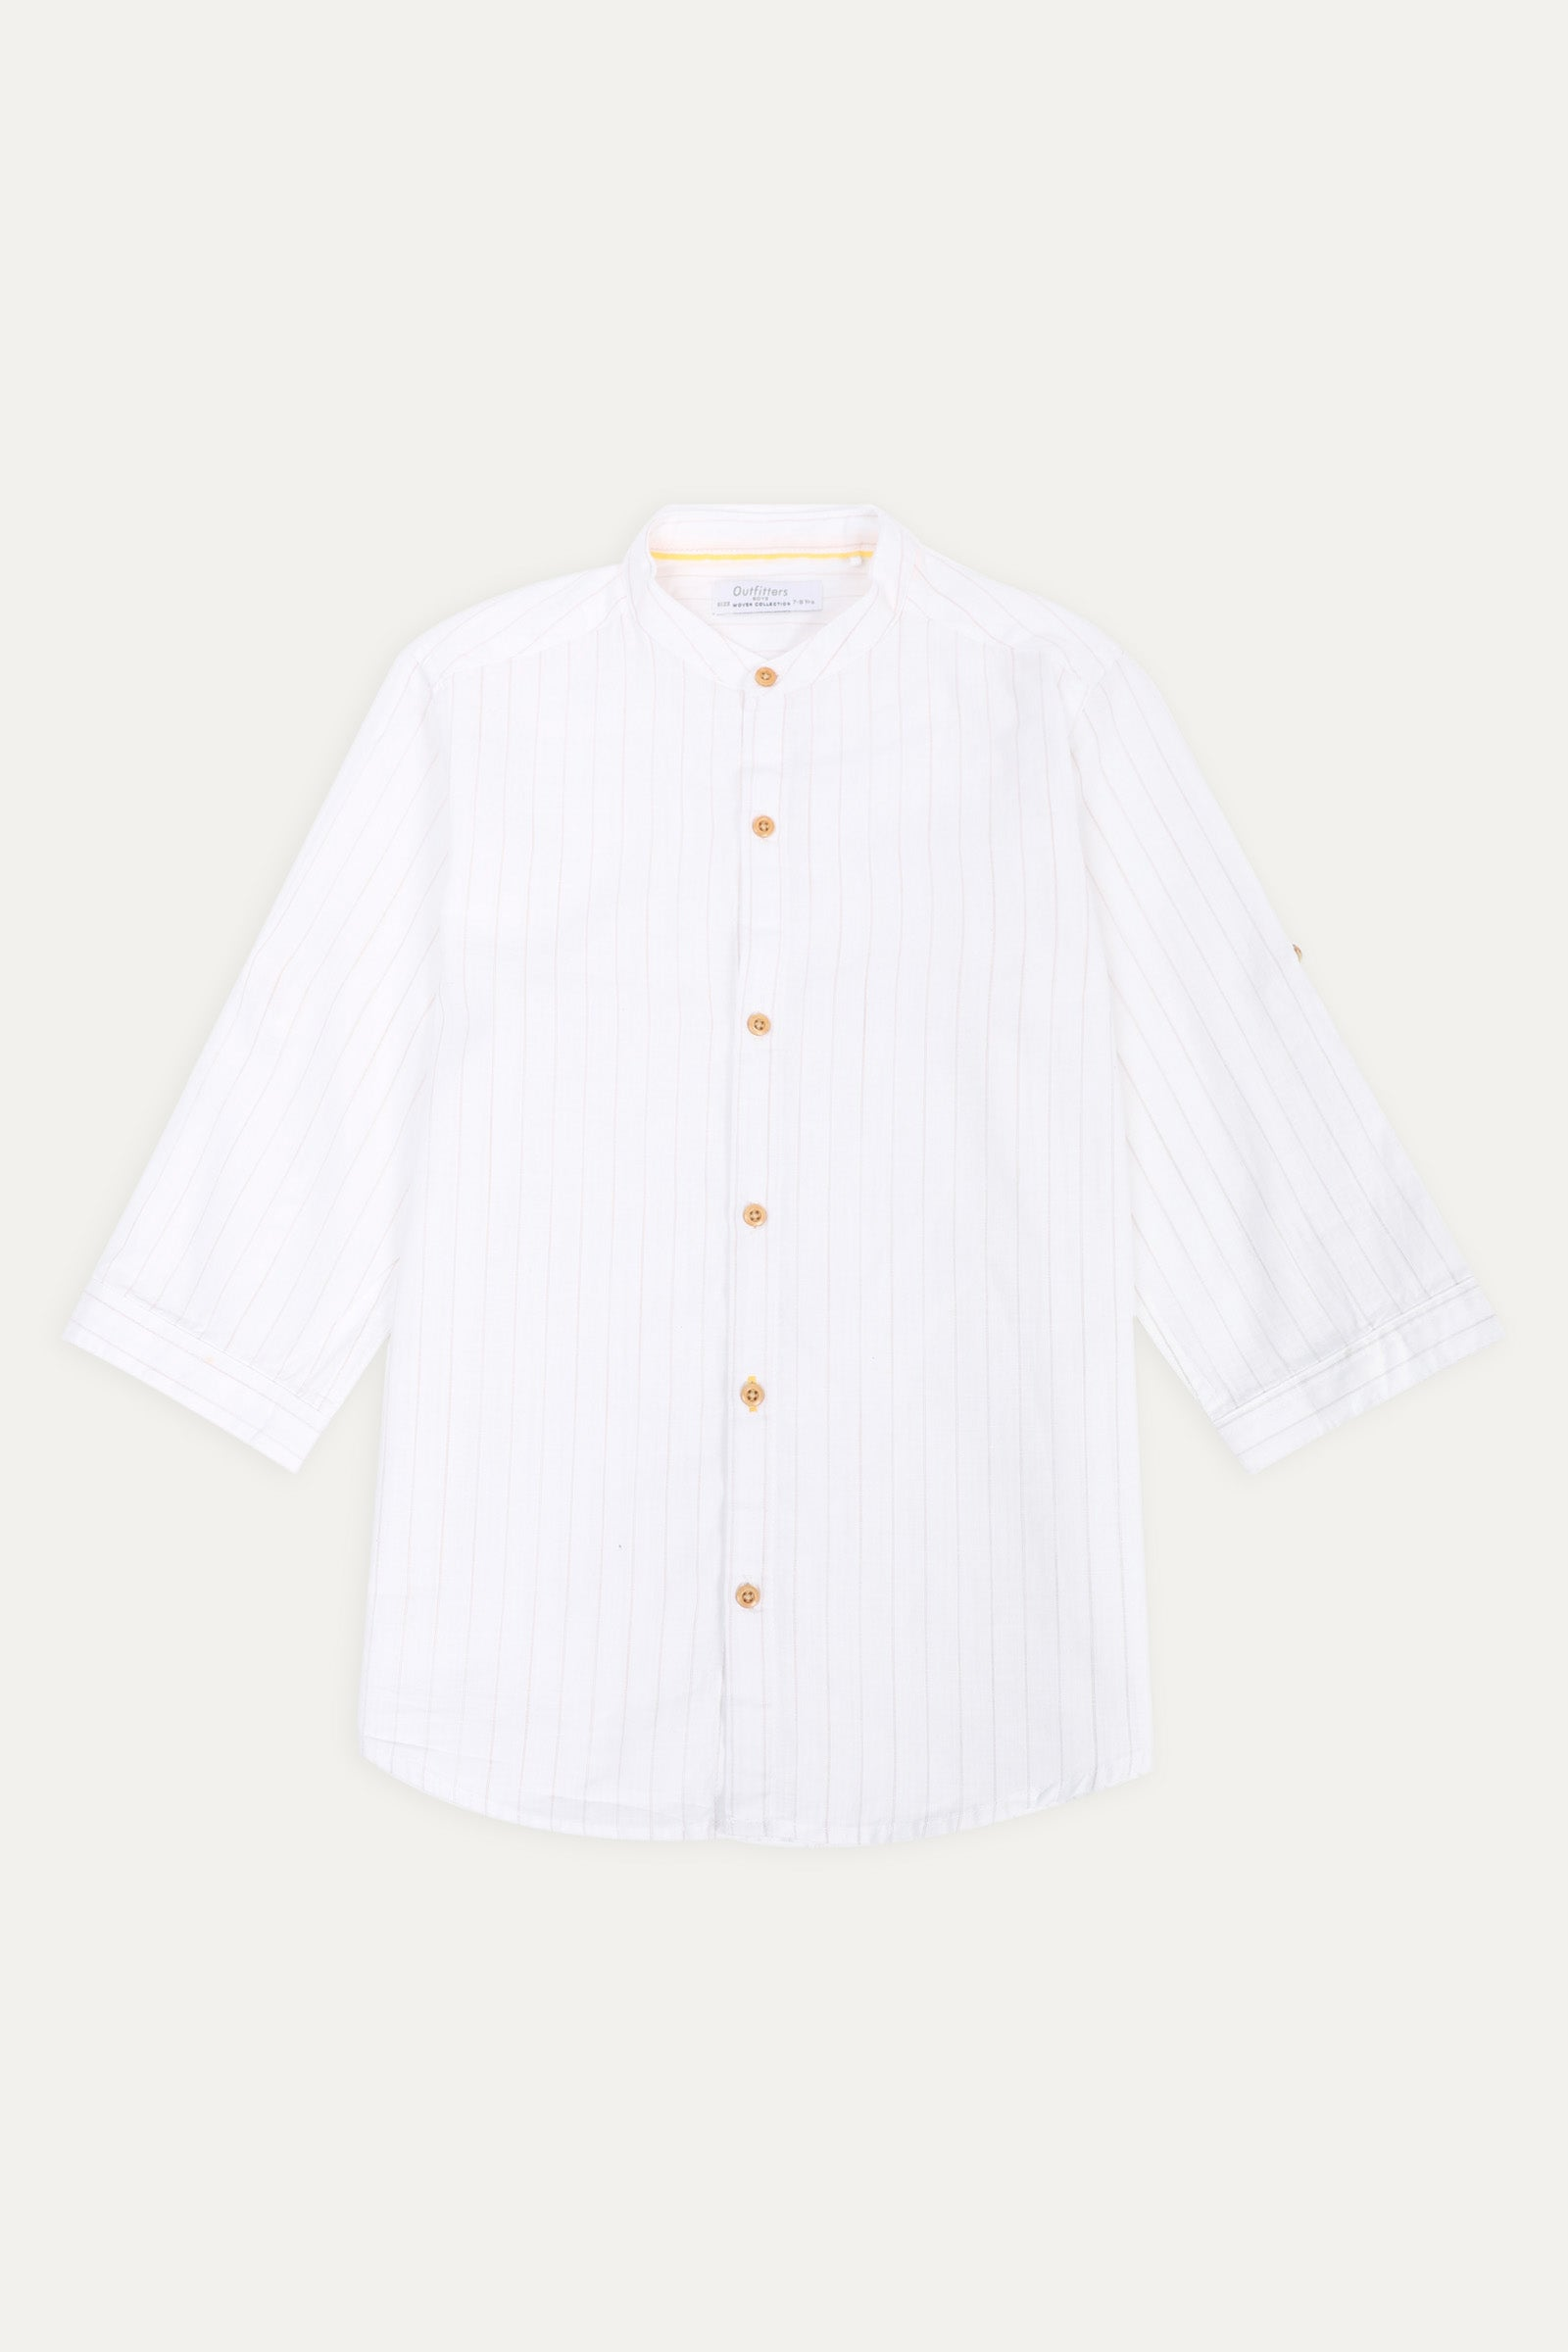 Self-pattern Shirt